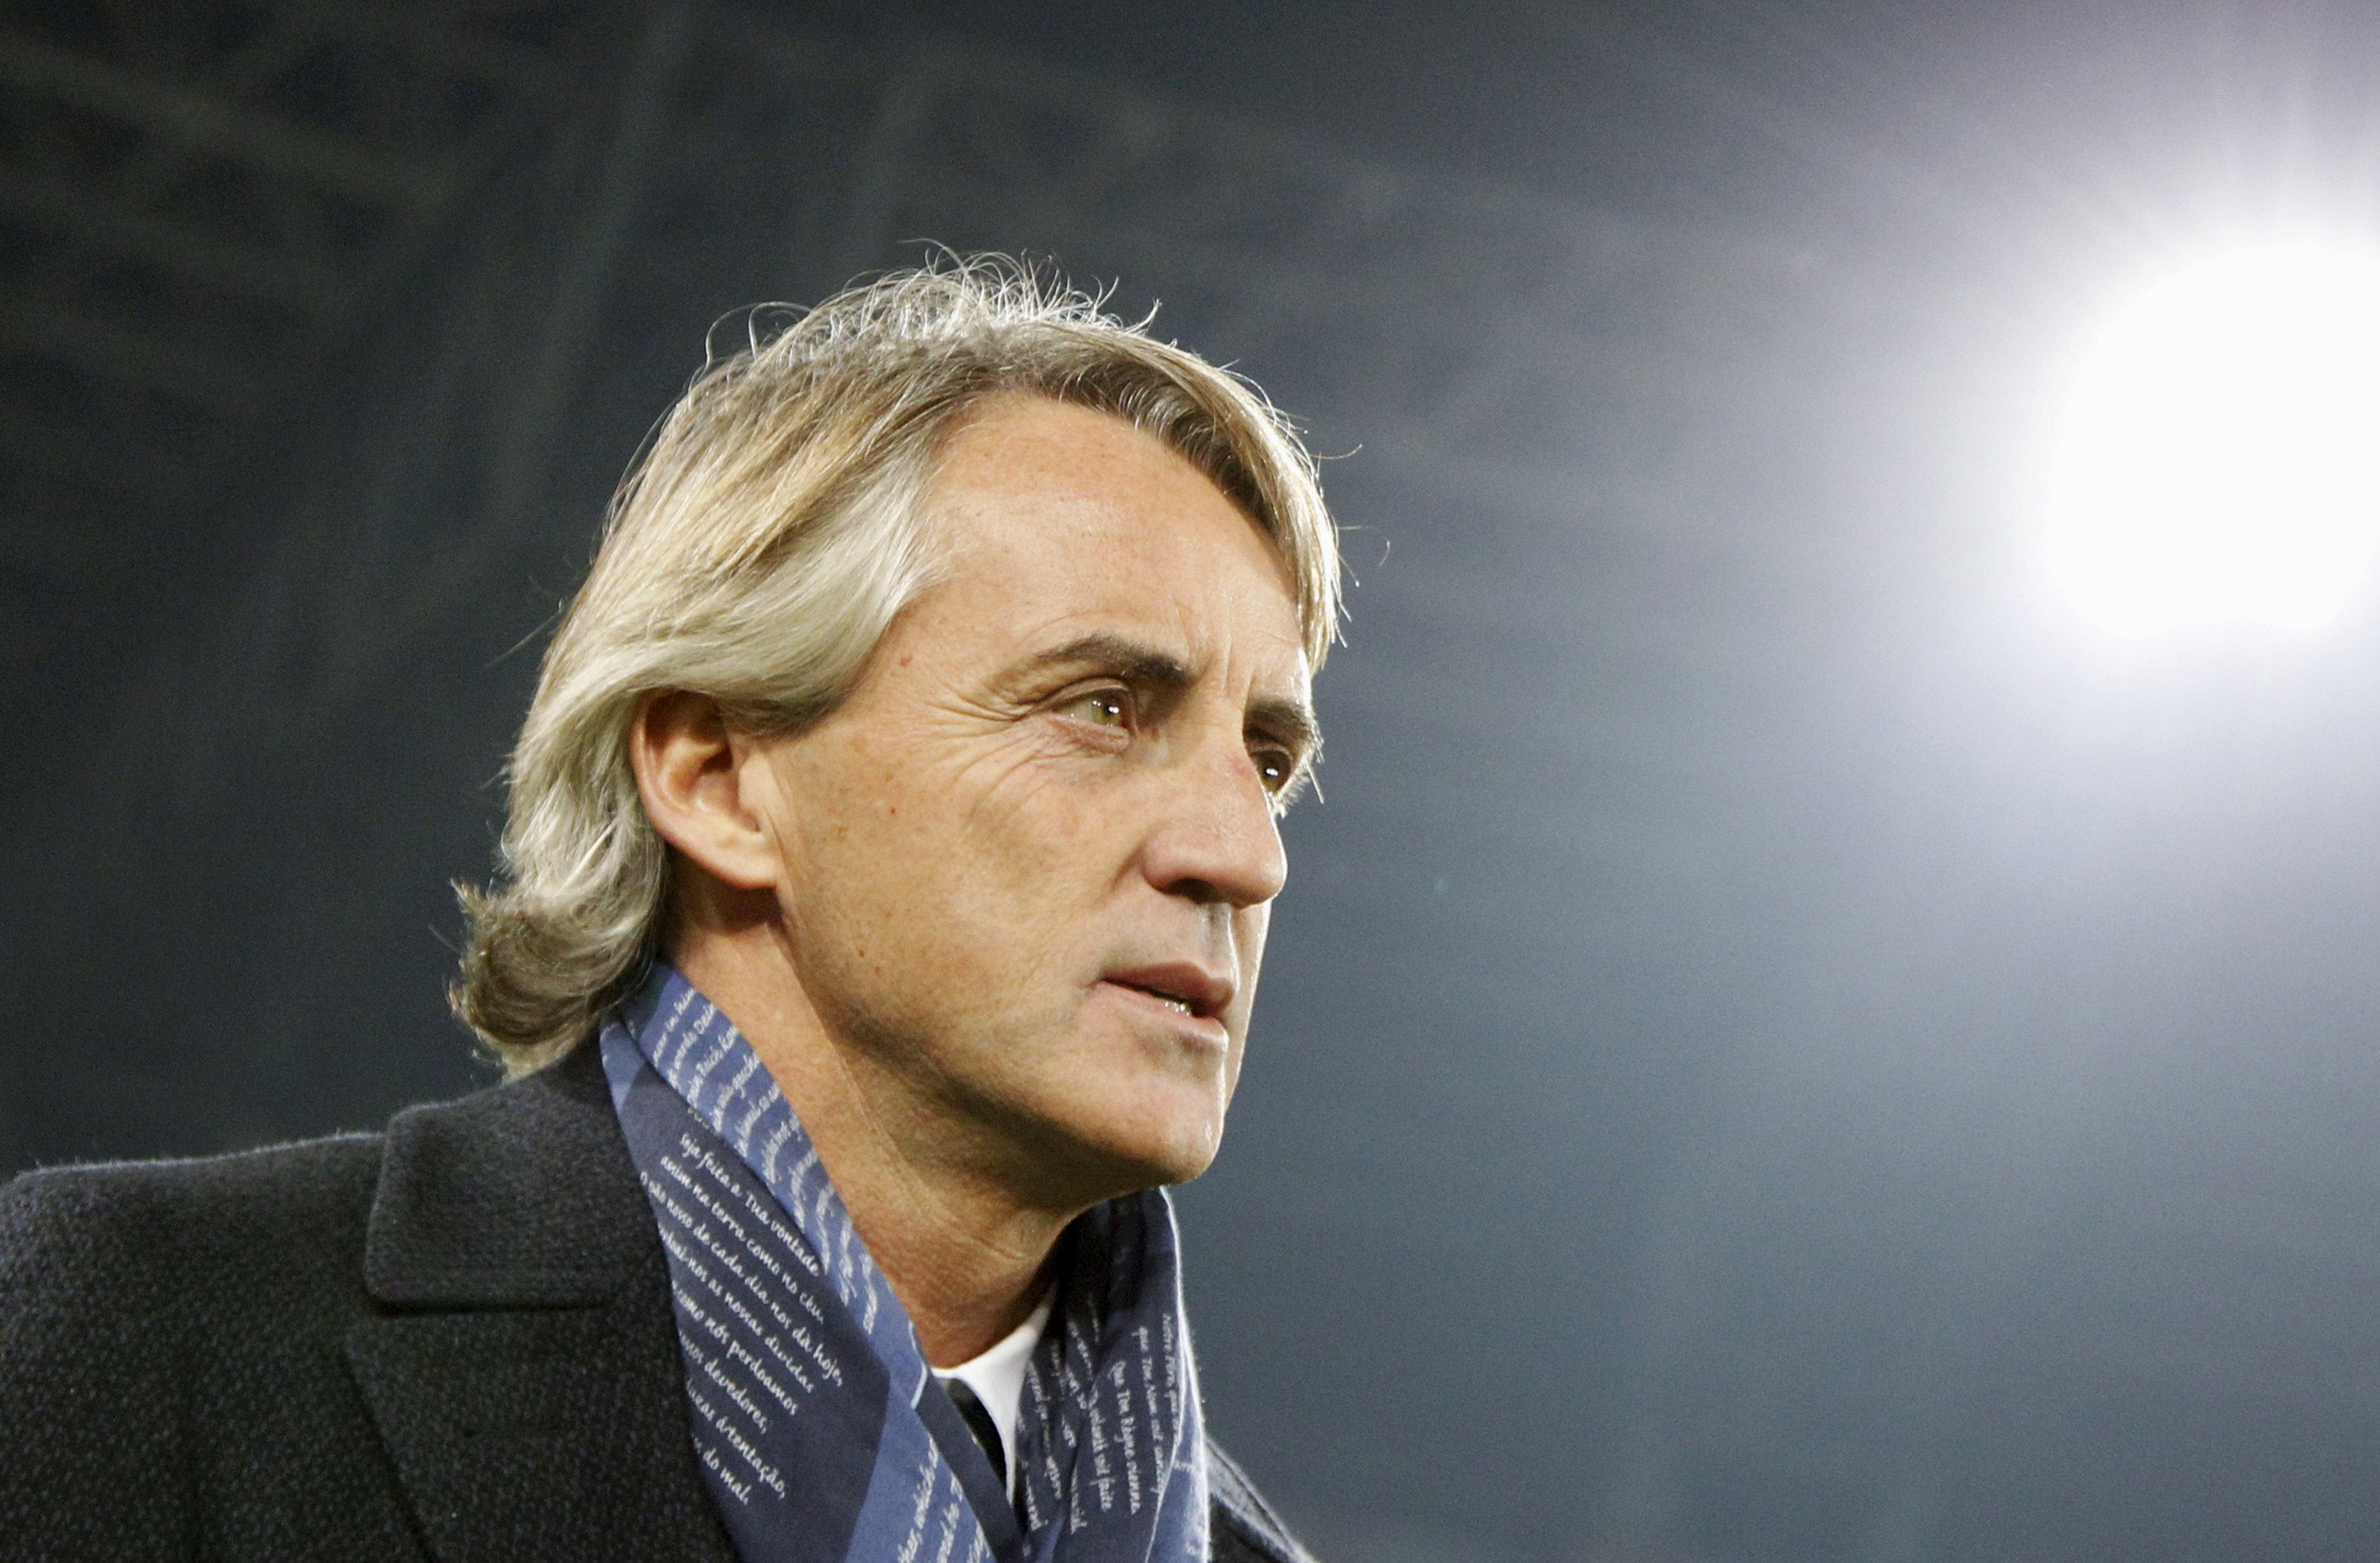 Inter Milan's coach Roberto Mancini looks on during their soccer match against Napoli on November 30, 2015. Photo: Reuters